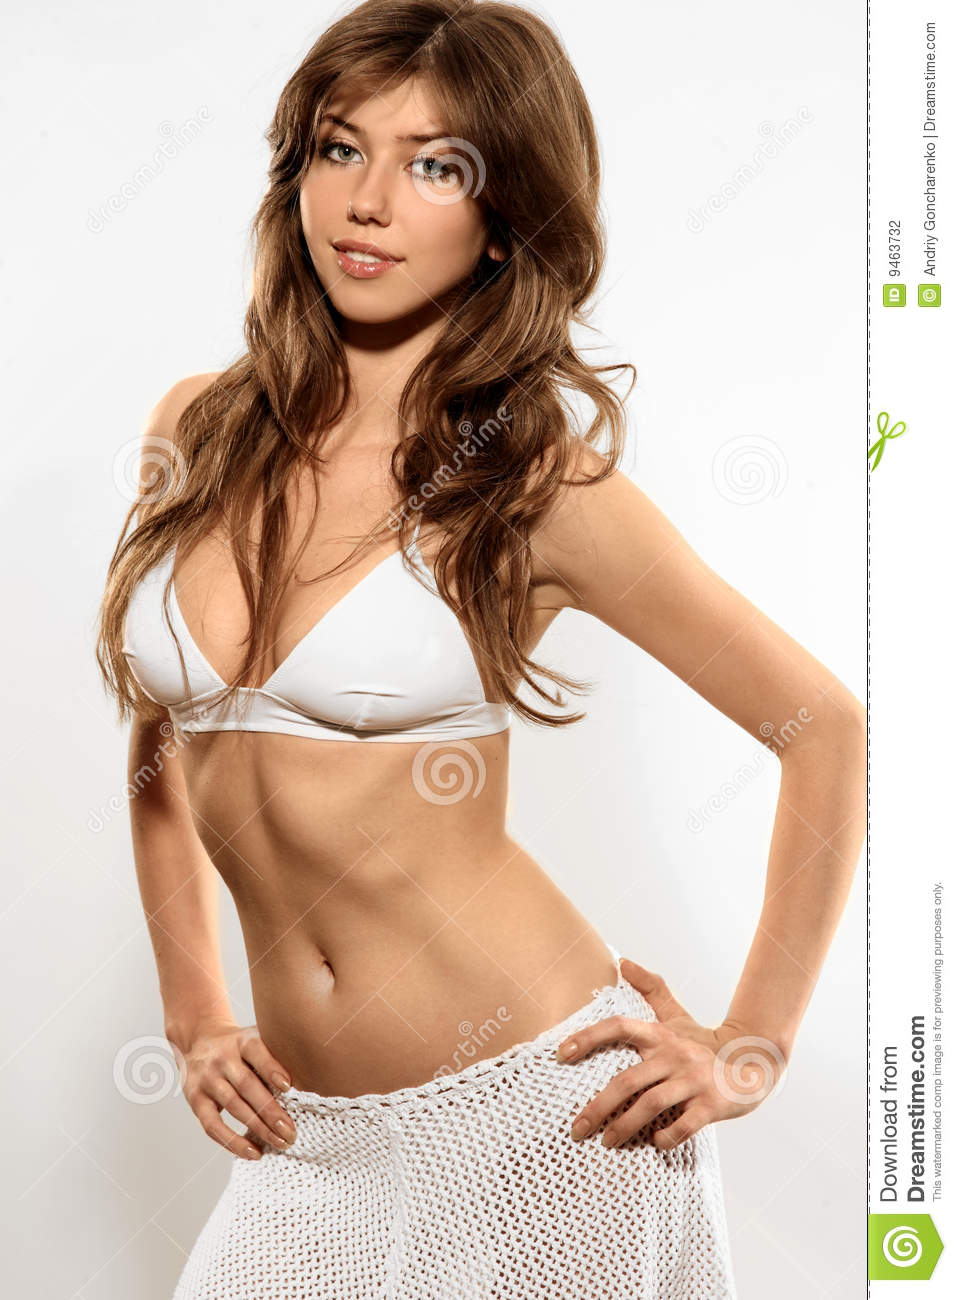 Glamour Model Stock Photo Image Of Bikini Person Female